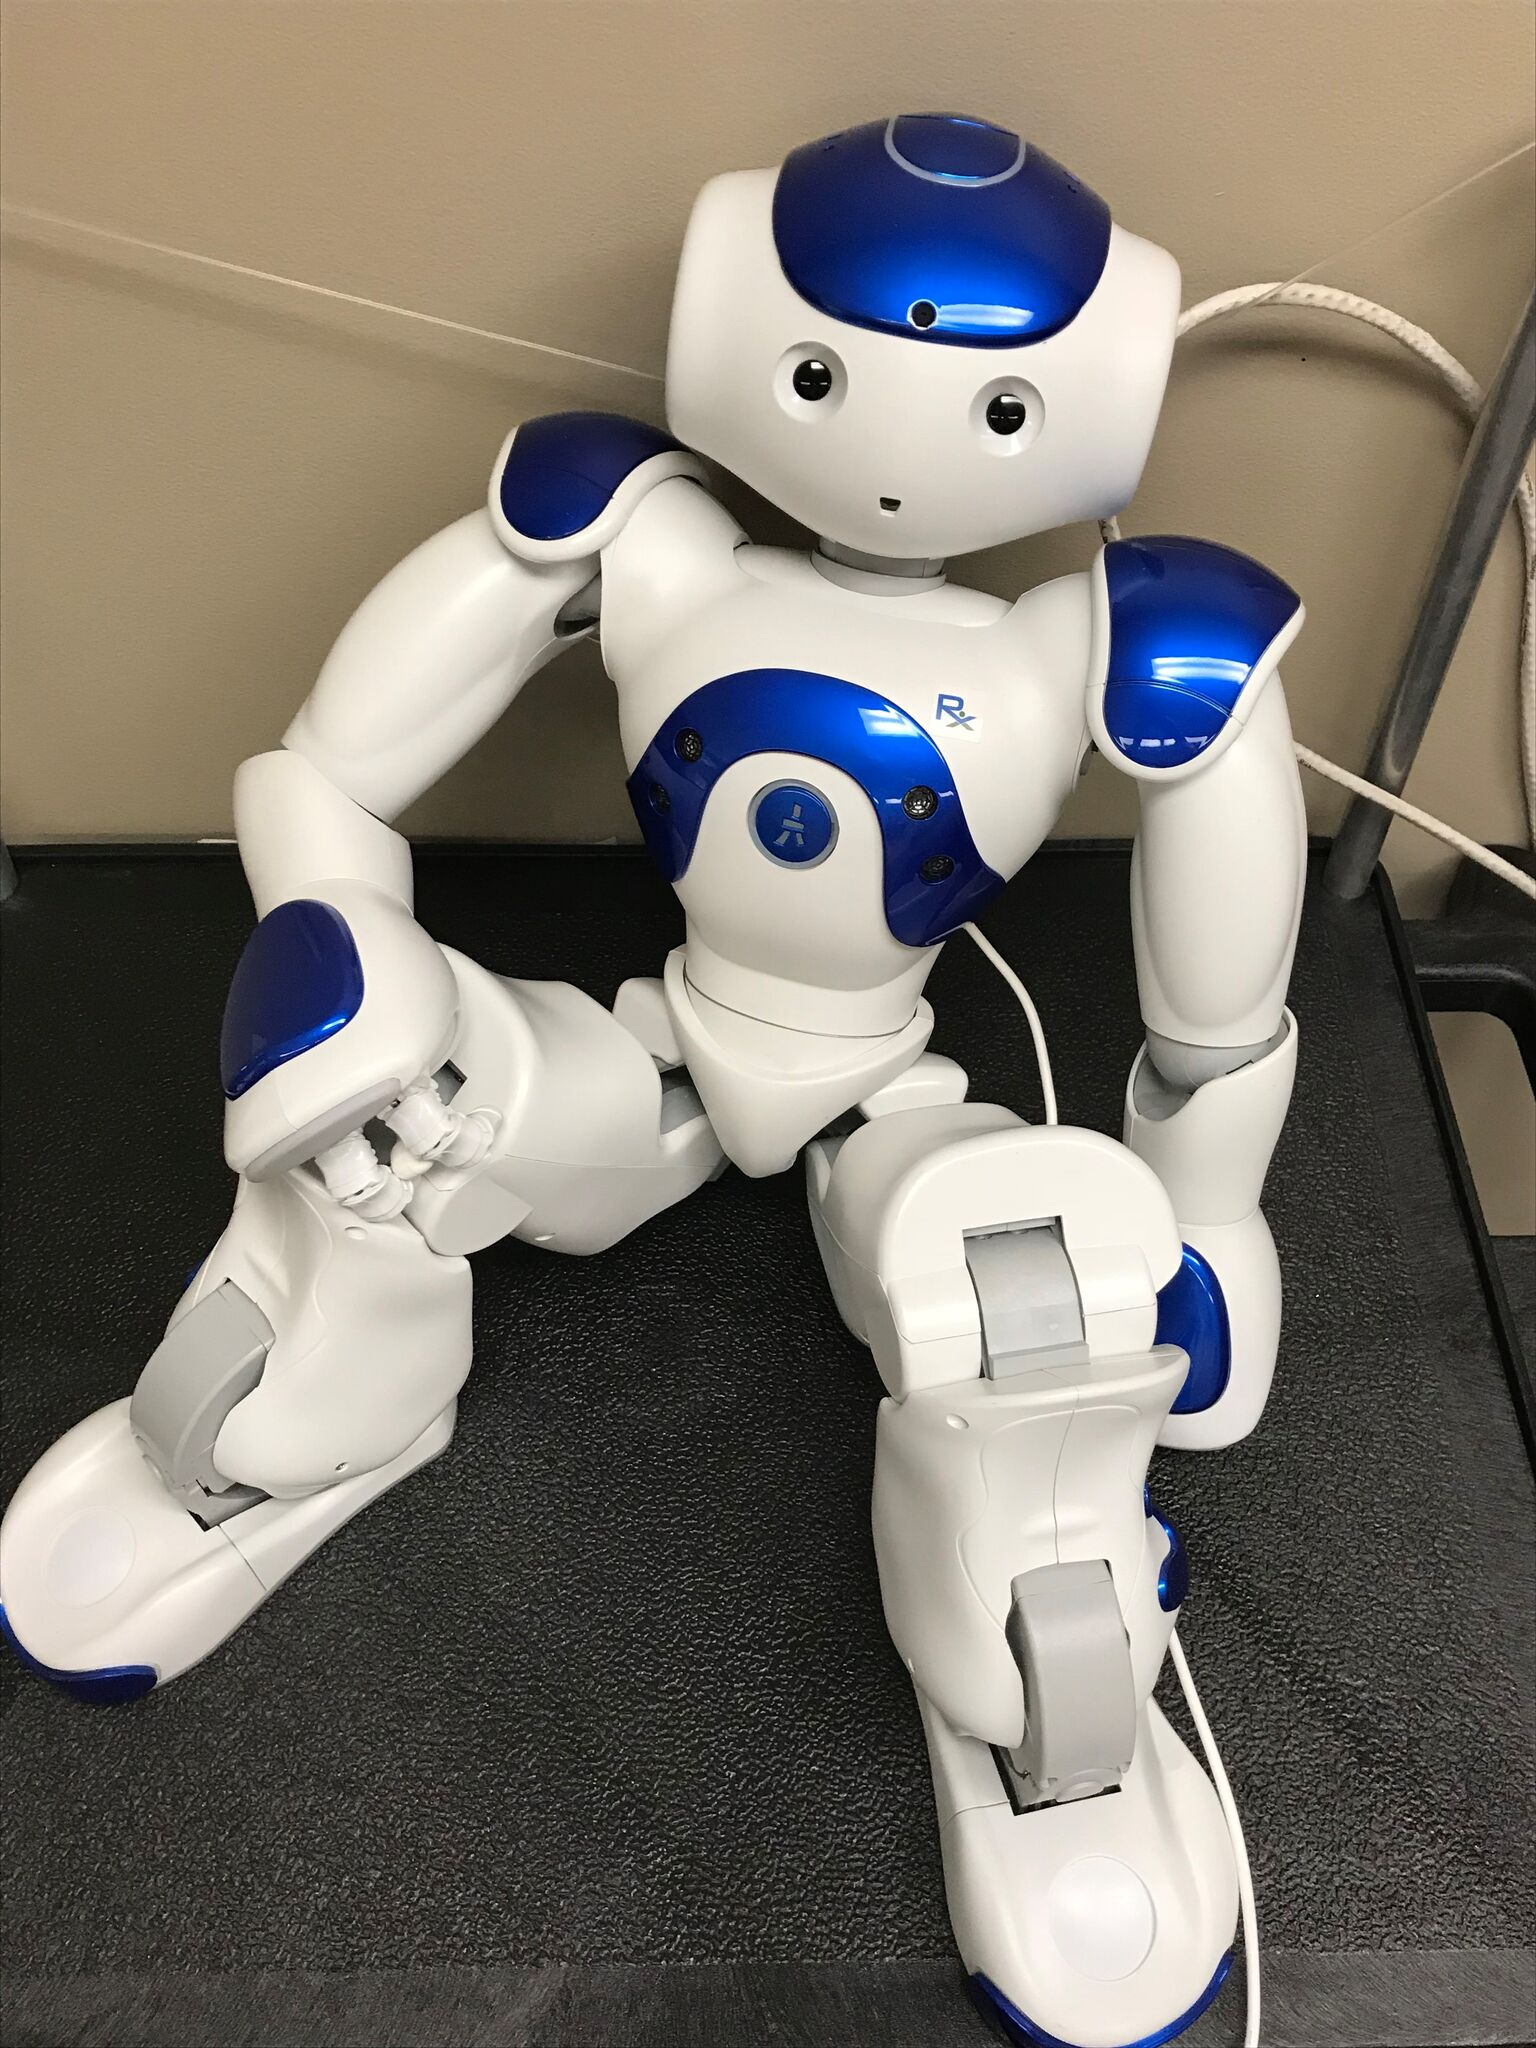 Children Robot New Humanoid Robot At Ruh To Help Children Country 600 Cjww